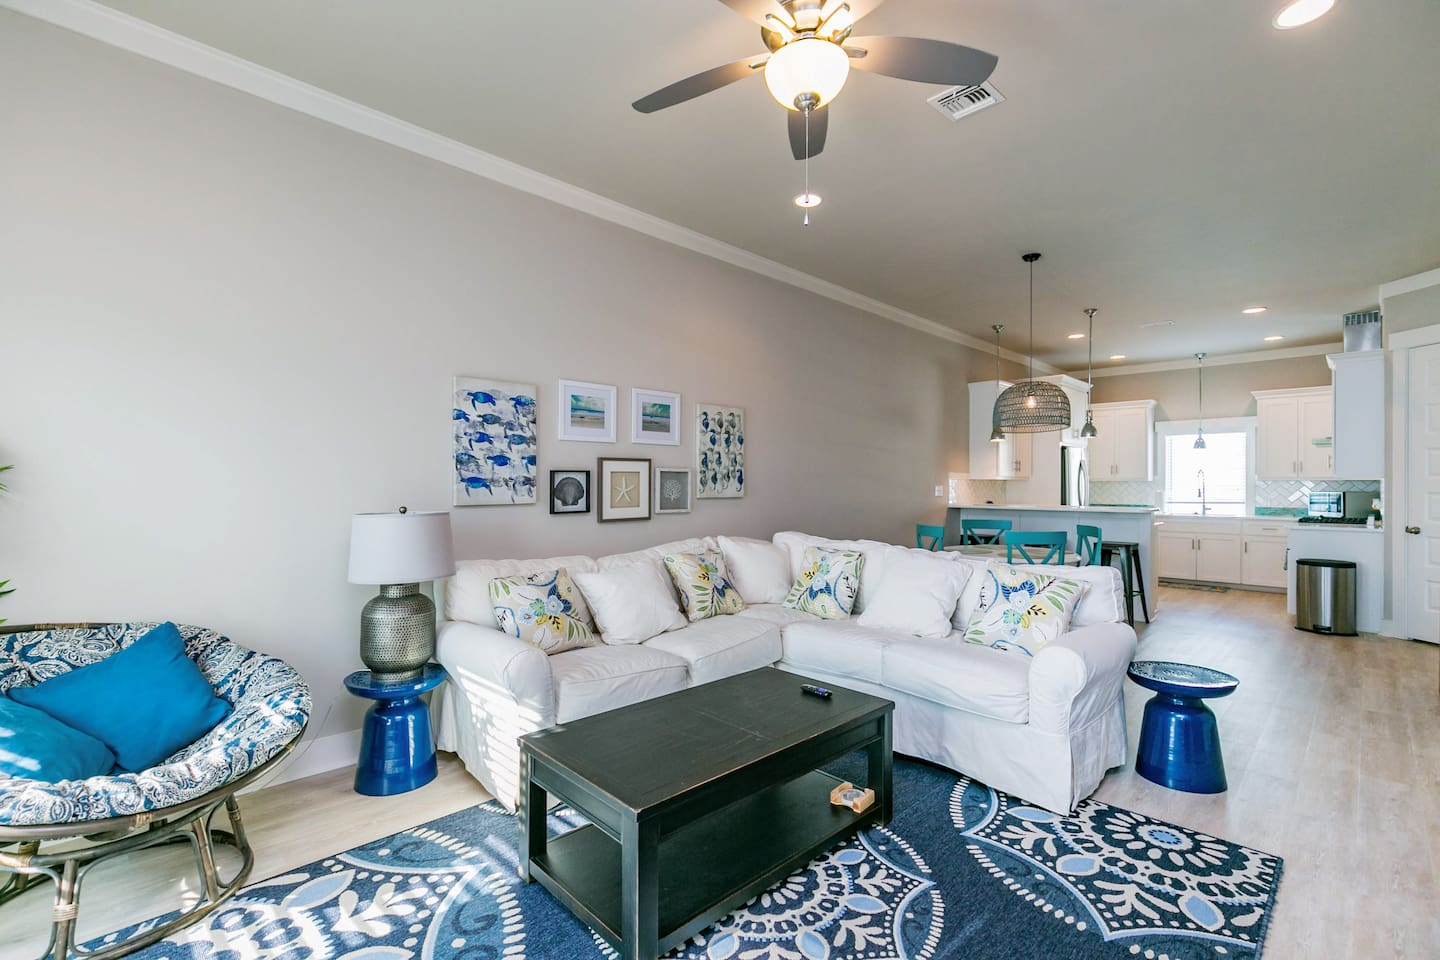 Open-concept living room perfect for movie nights and conversation over hors d'oeuvres.